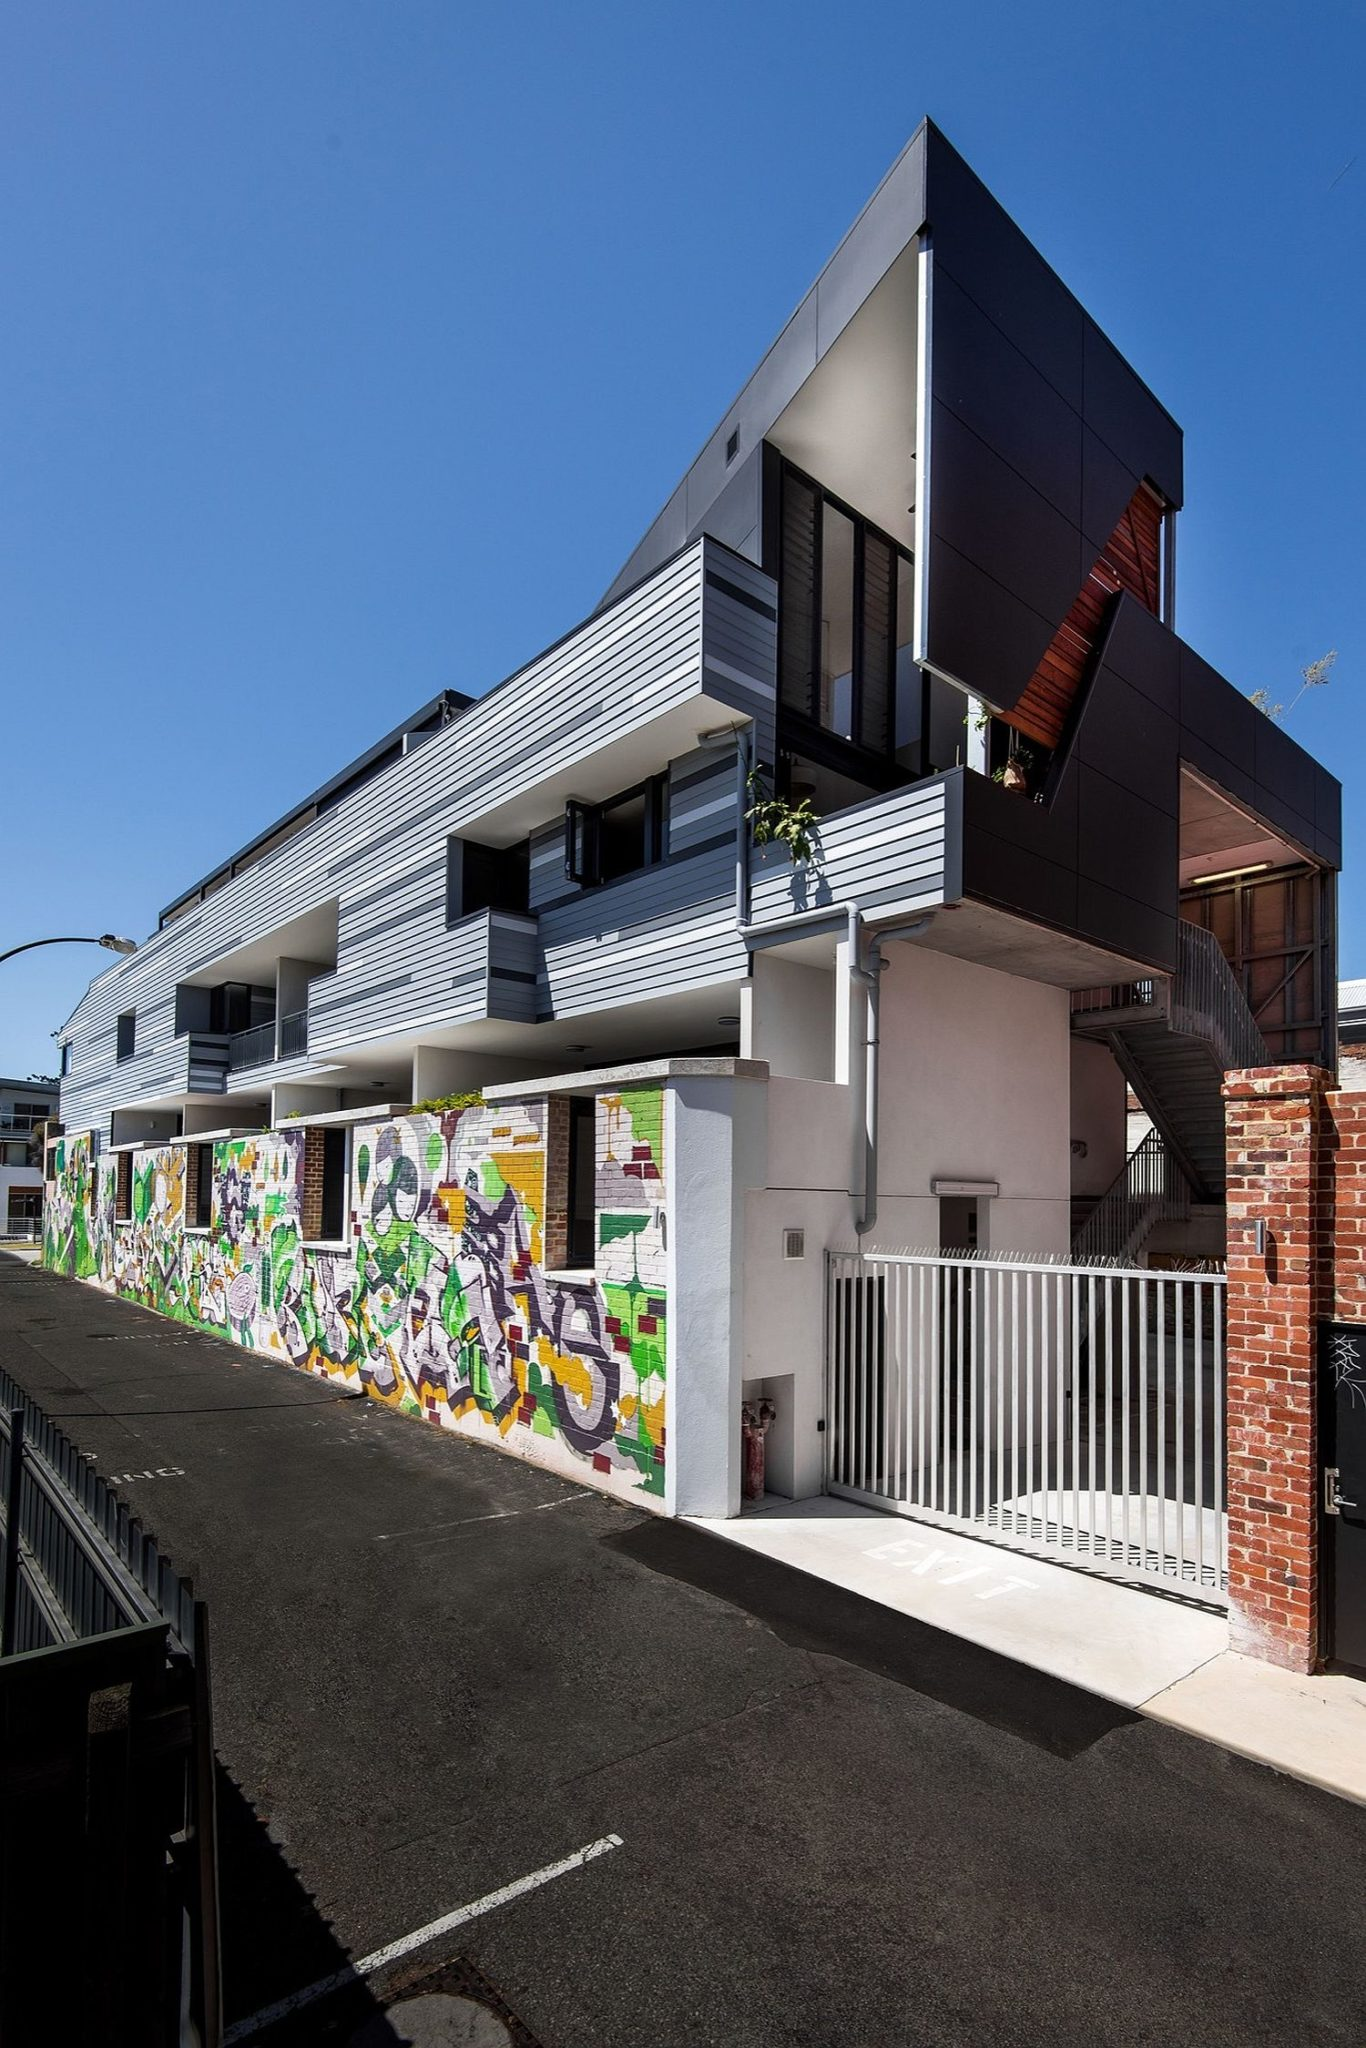 Street facade of the revamped heritage home decorated with graffiti